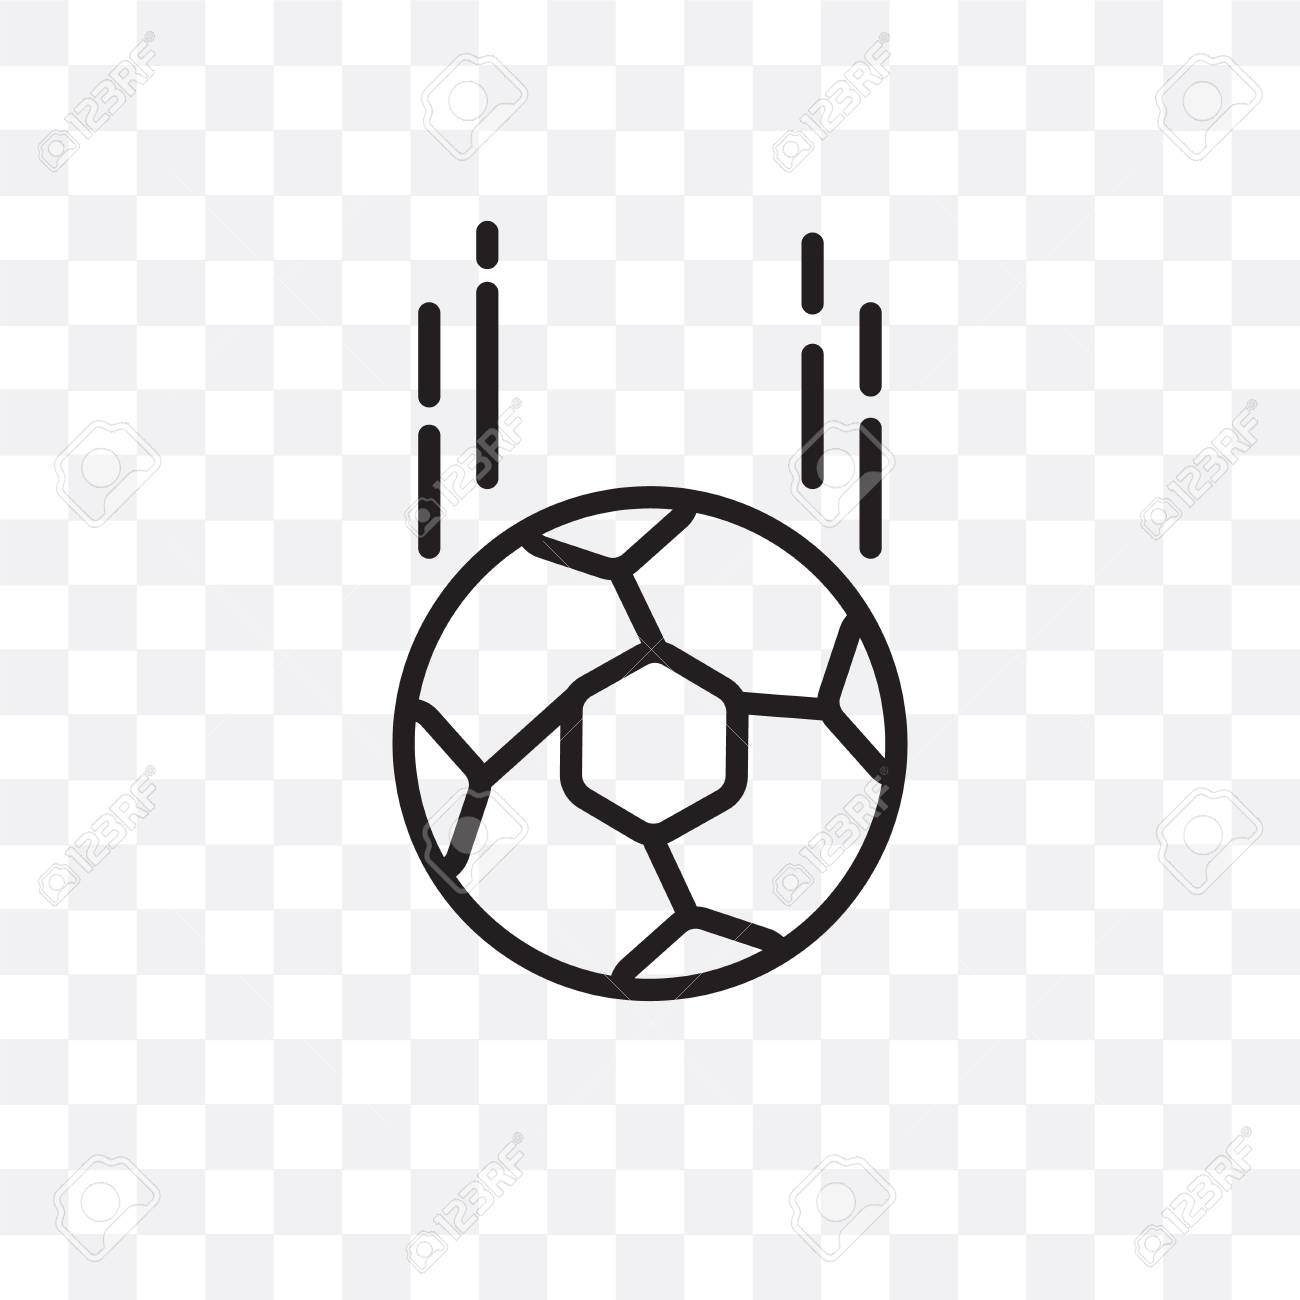 Soccer Ball Vector Icon Isolated On Transparent Background Soccer Royalty Free Cliparts Vectors And Stock Illustration Image 107269904